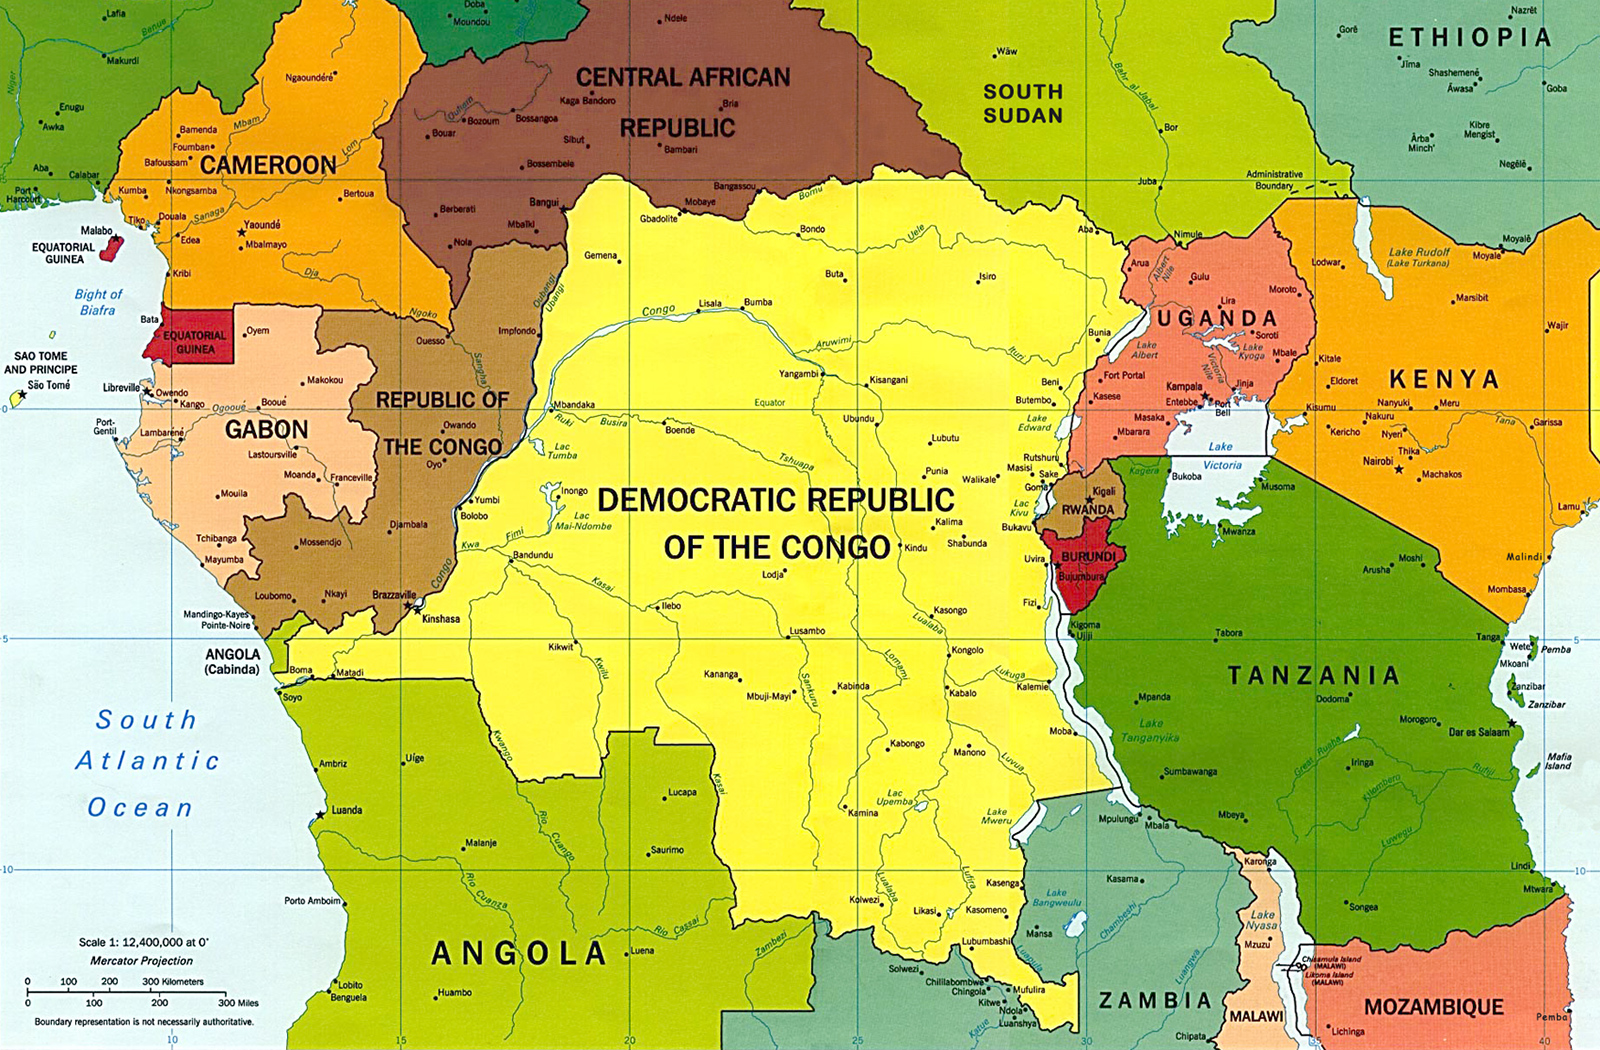 Map of the Central Africa - Travel Guide